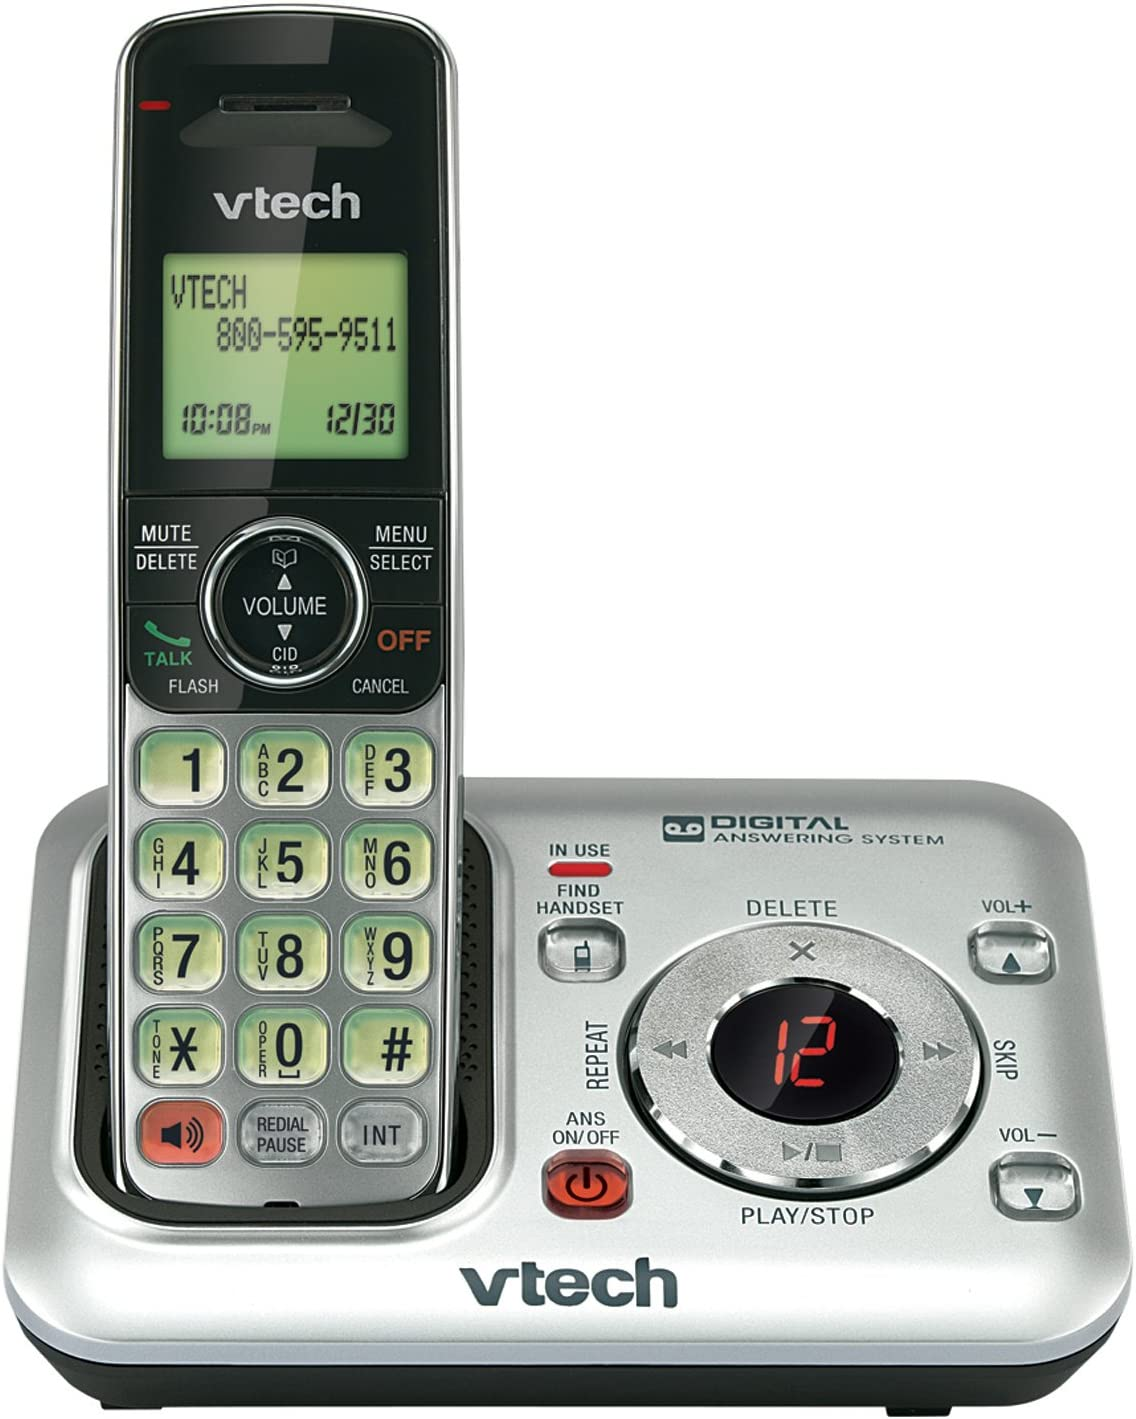 VTech CS6429 DECT 6.0 Cordless Phone with Answering System and Caller ID, Expandable up to 5 Handsets, Wall-Mountable, Silver/Black